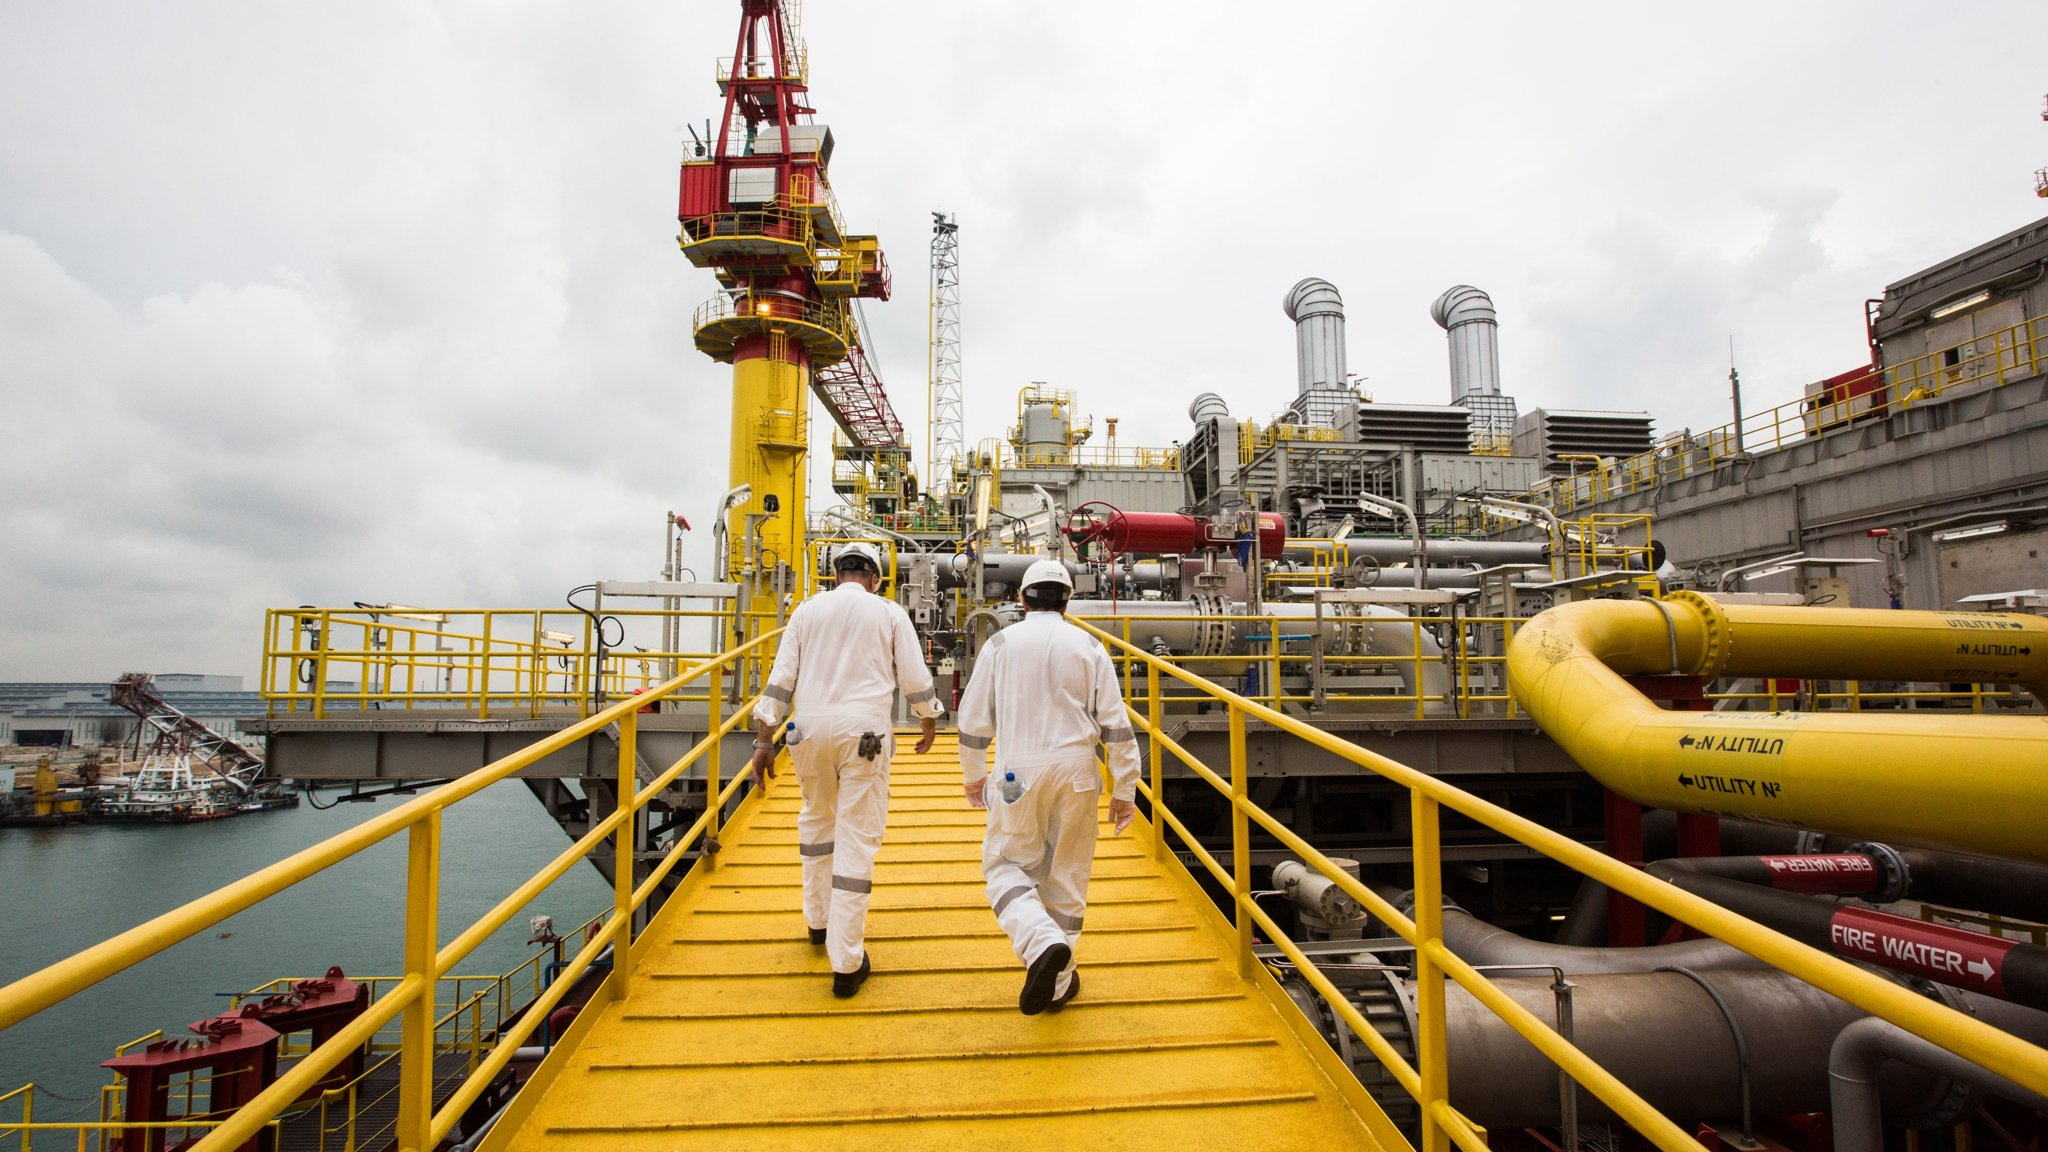 Asia rig builders reel from oil price rout | Financial Times